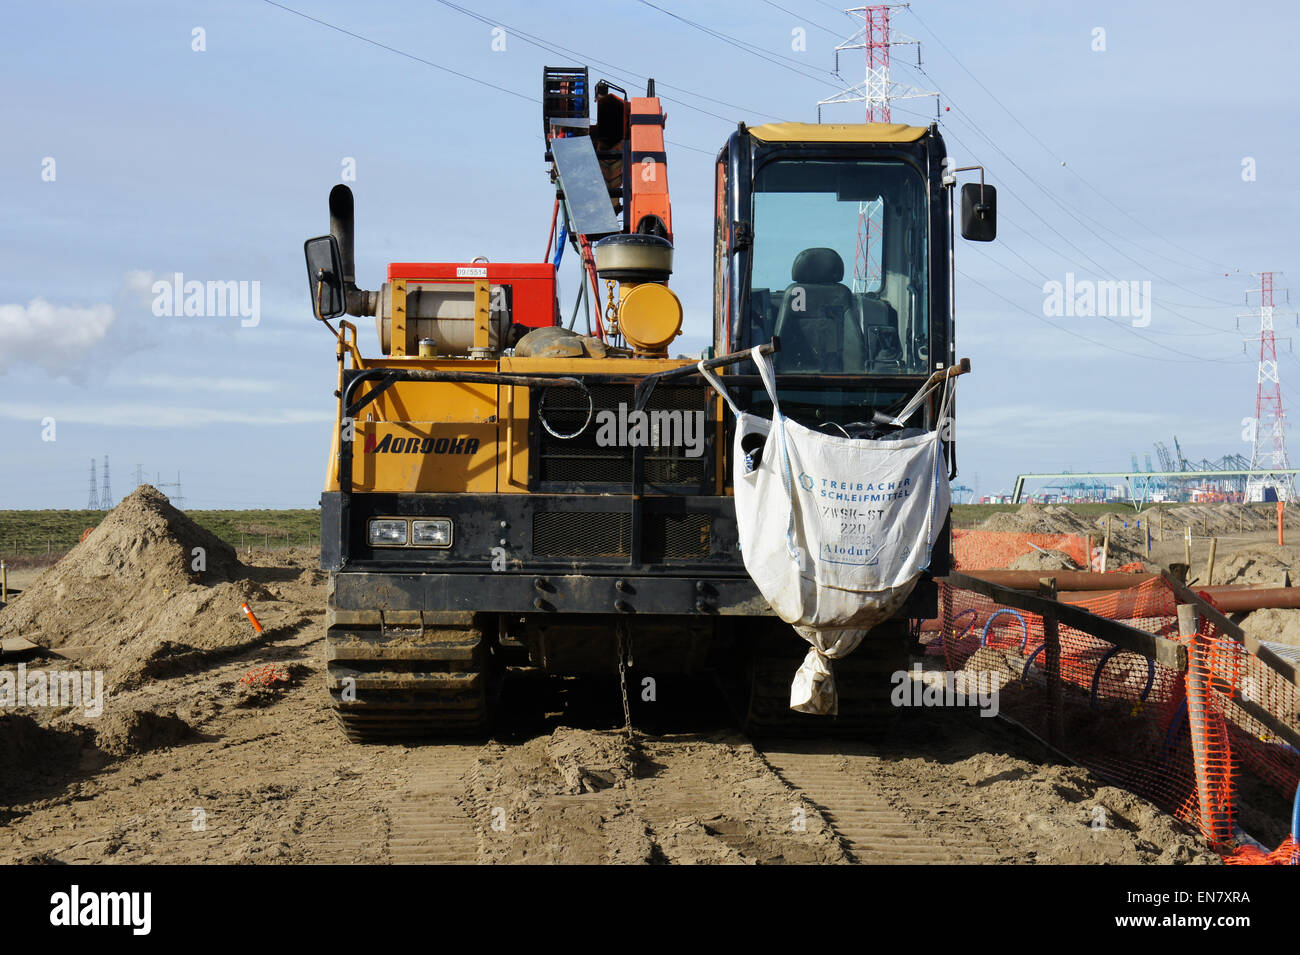 Morooka Rubber Track Carrier MST 2200VD, DENYS 05-314 pic5 - Stock Image